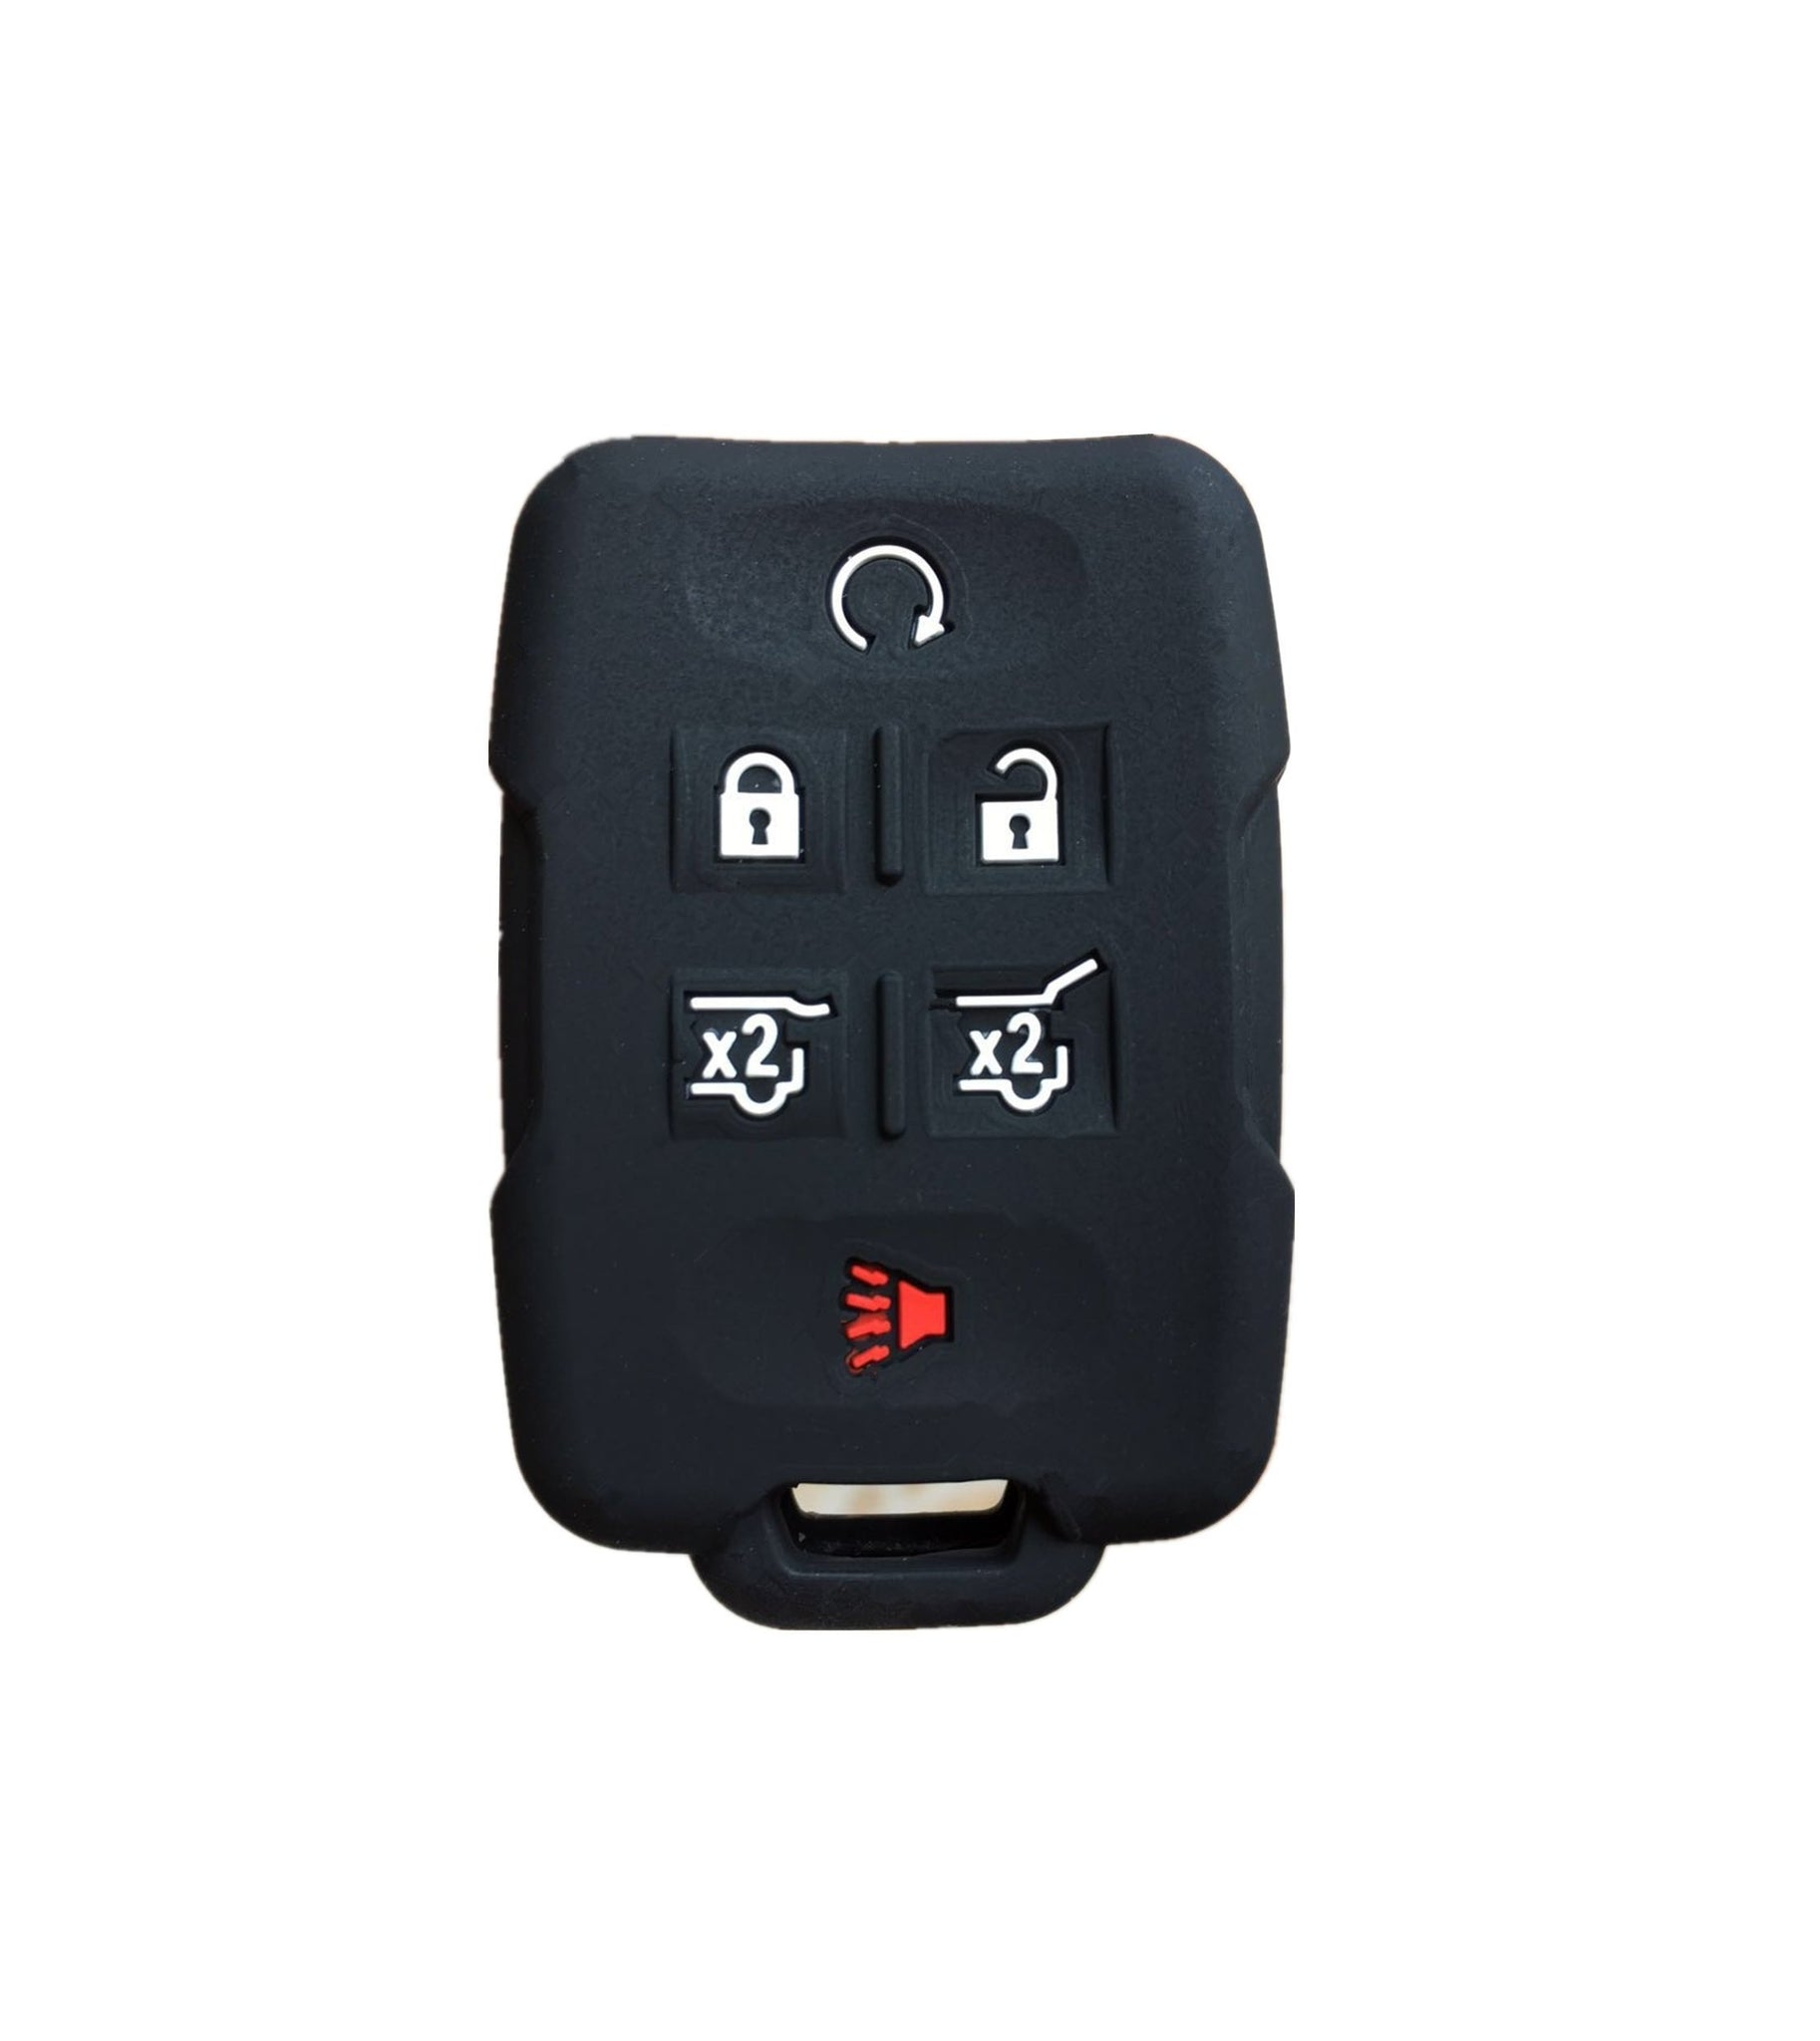 Chevrolet GMC 4 5 6 Button Smart Key Fob Remote Silicone Rubber Protective Cover Skin